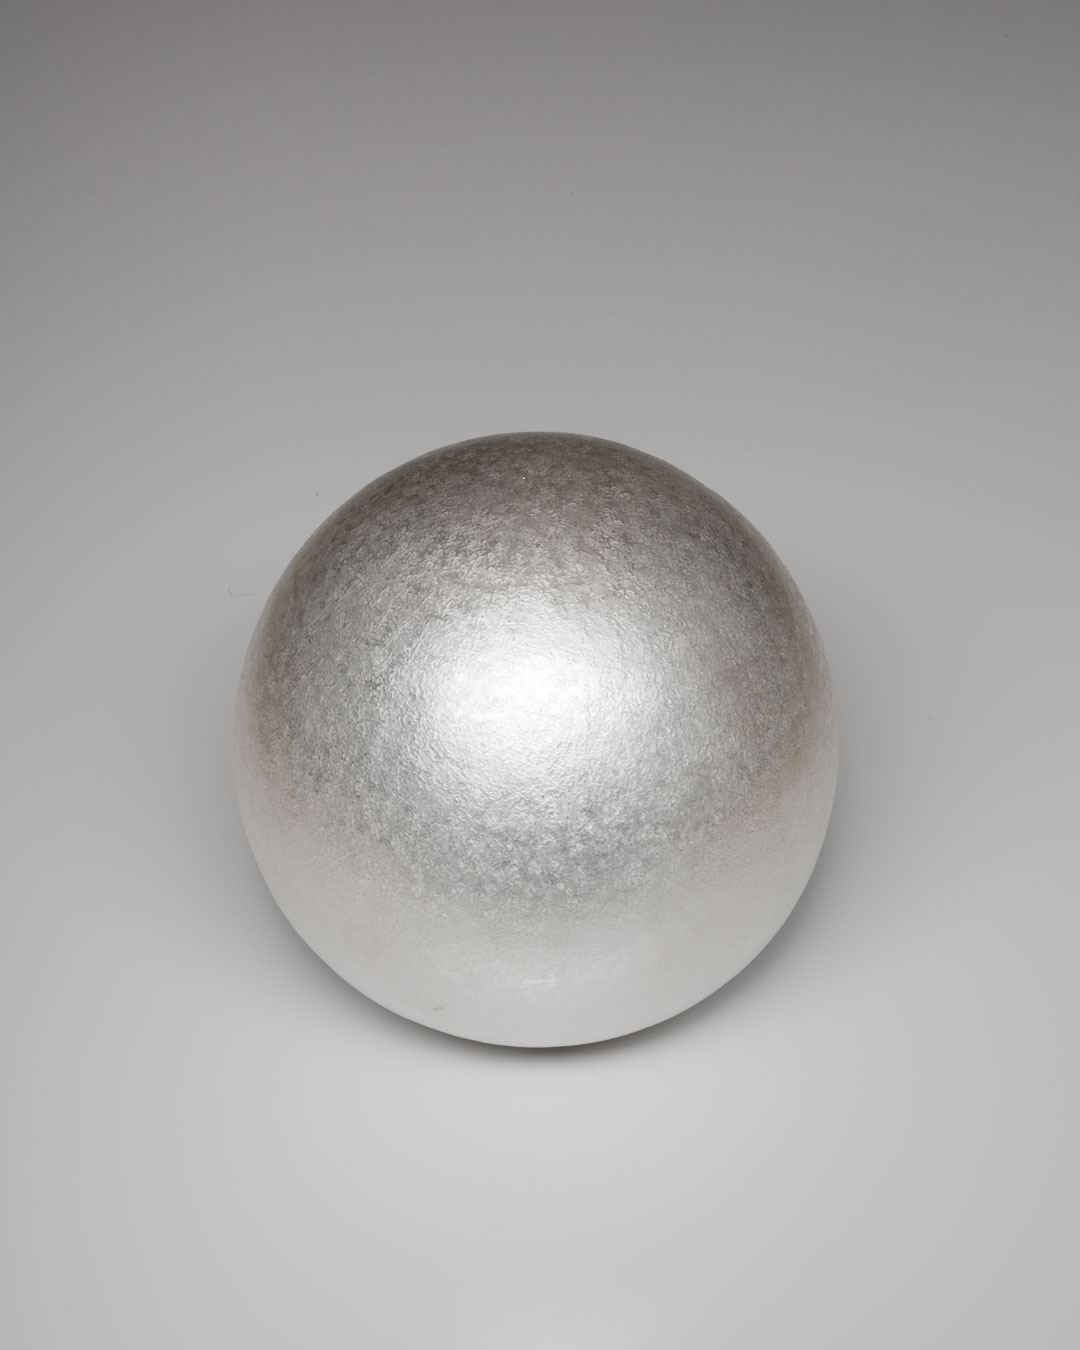 David Huycke, White Moon, 2012, object; silver 925/1000 - 723 gram, 165 x 165 x 165 mm, €4500 (image 1 of 2)